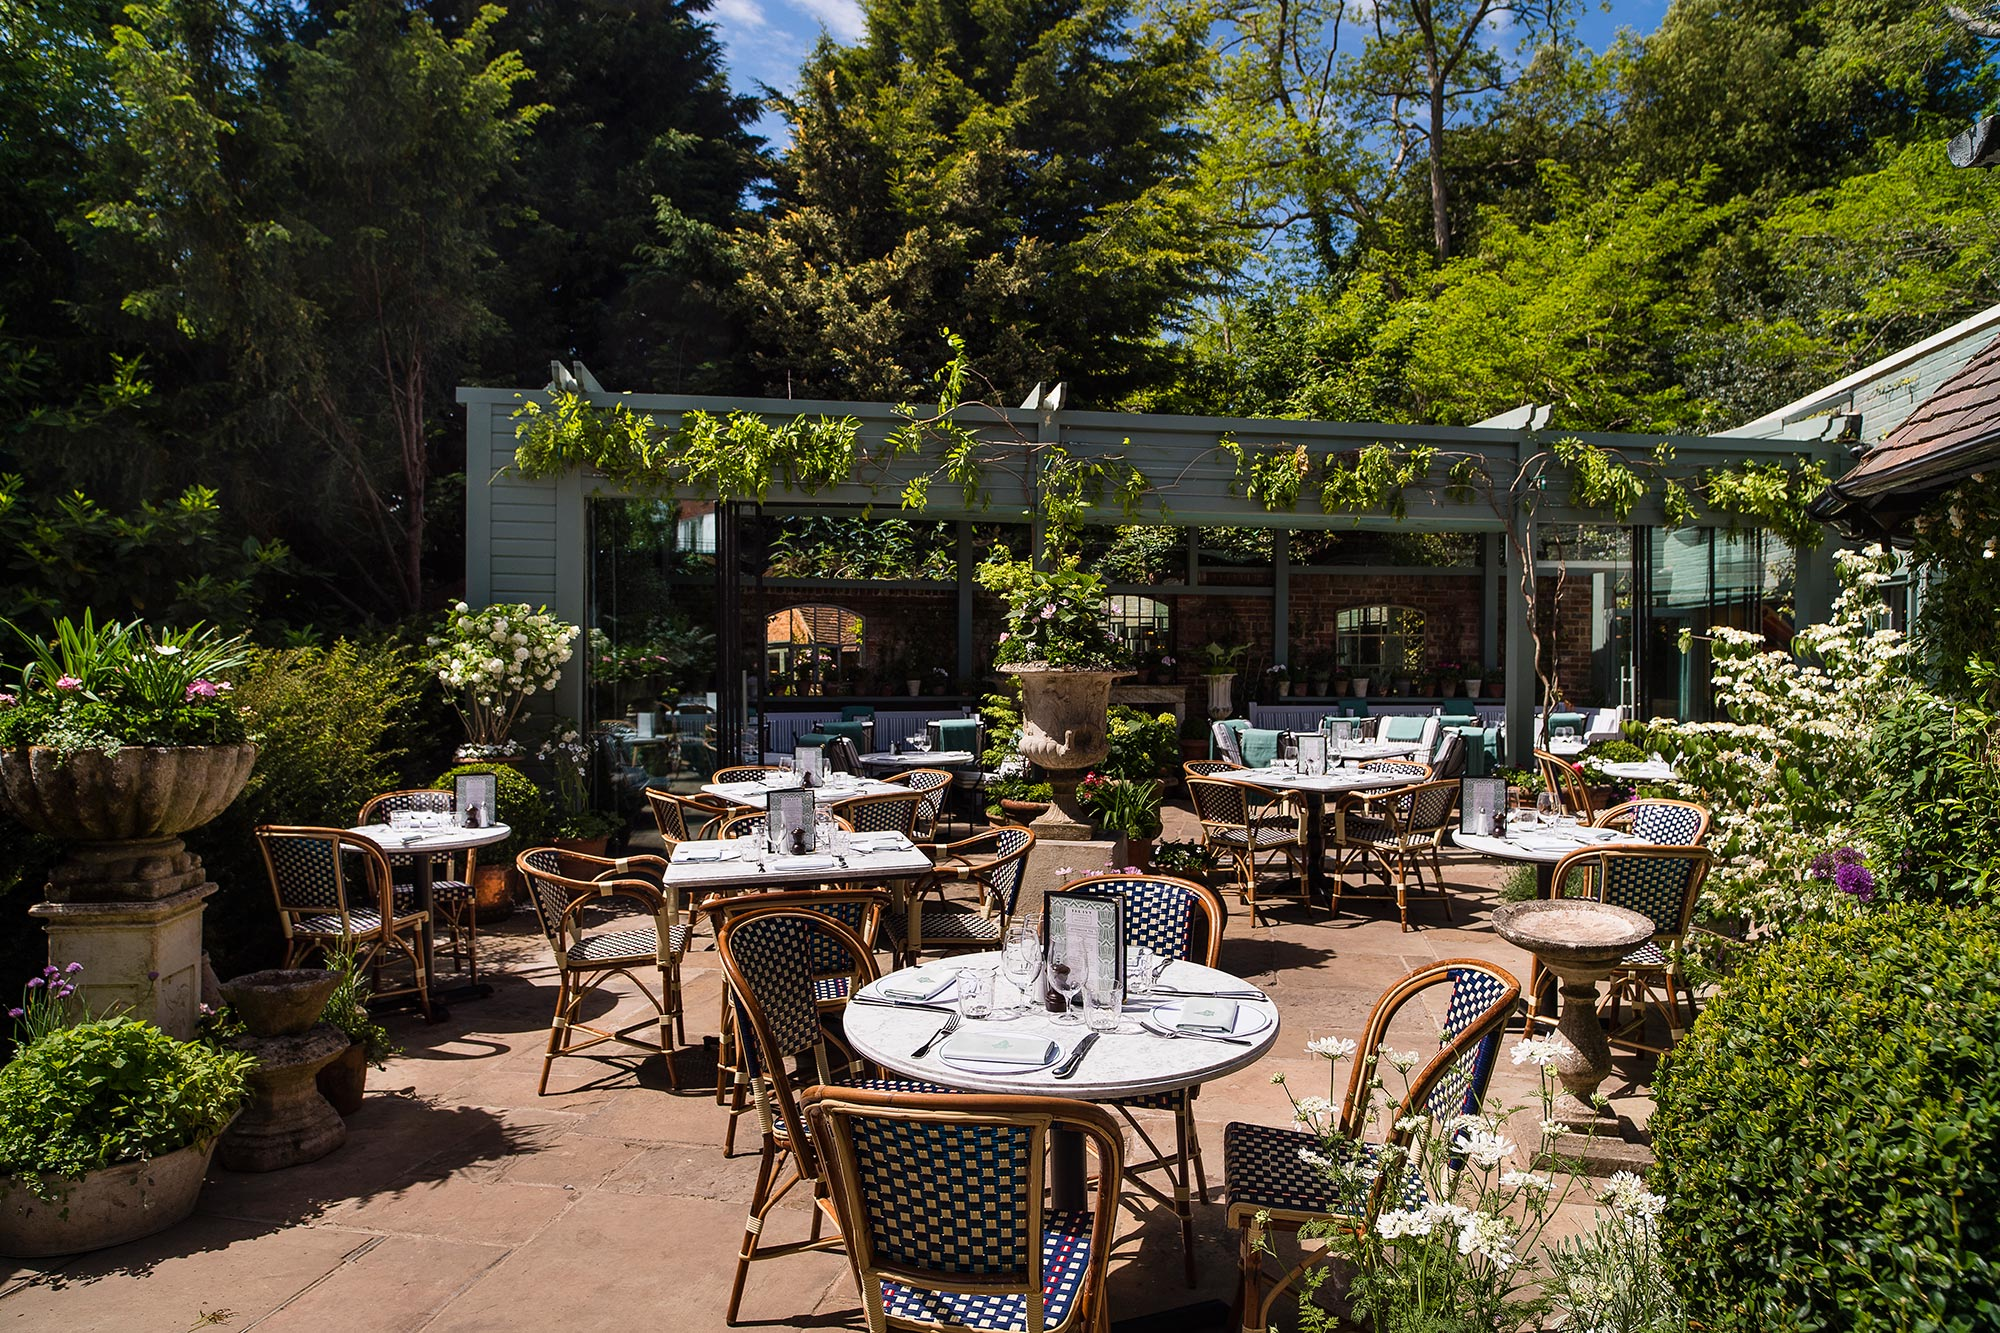 The Garden at The Ivy Cobham Brasserie - The Ivy Cobham Brasserie